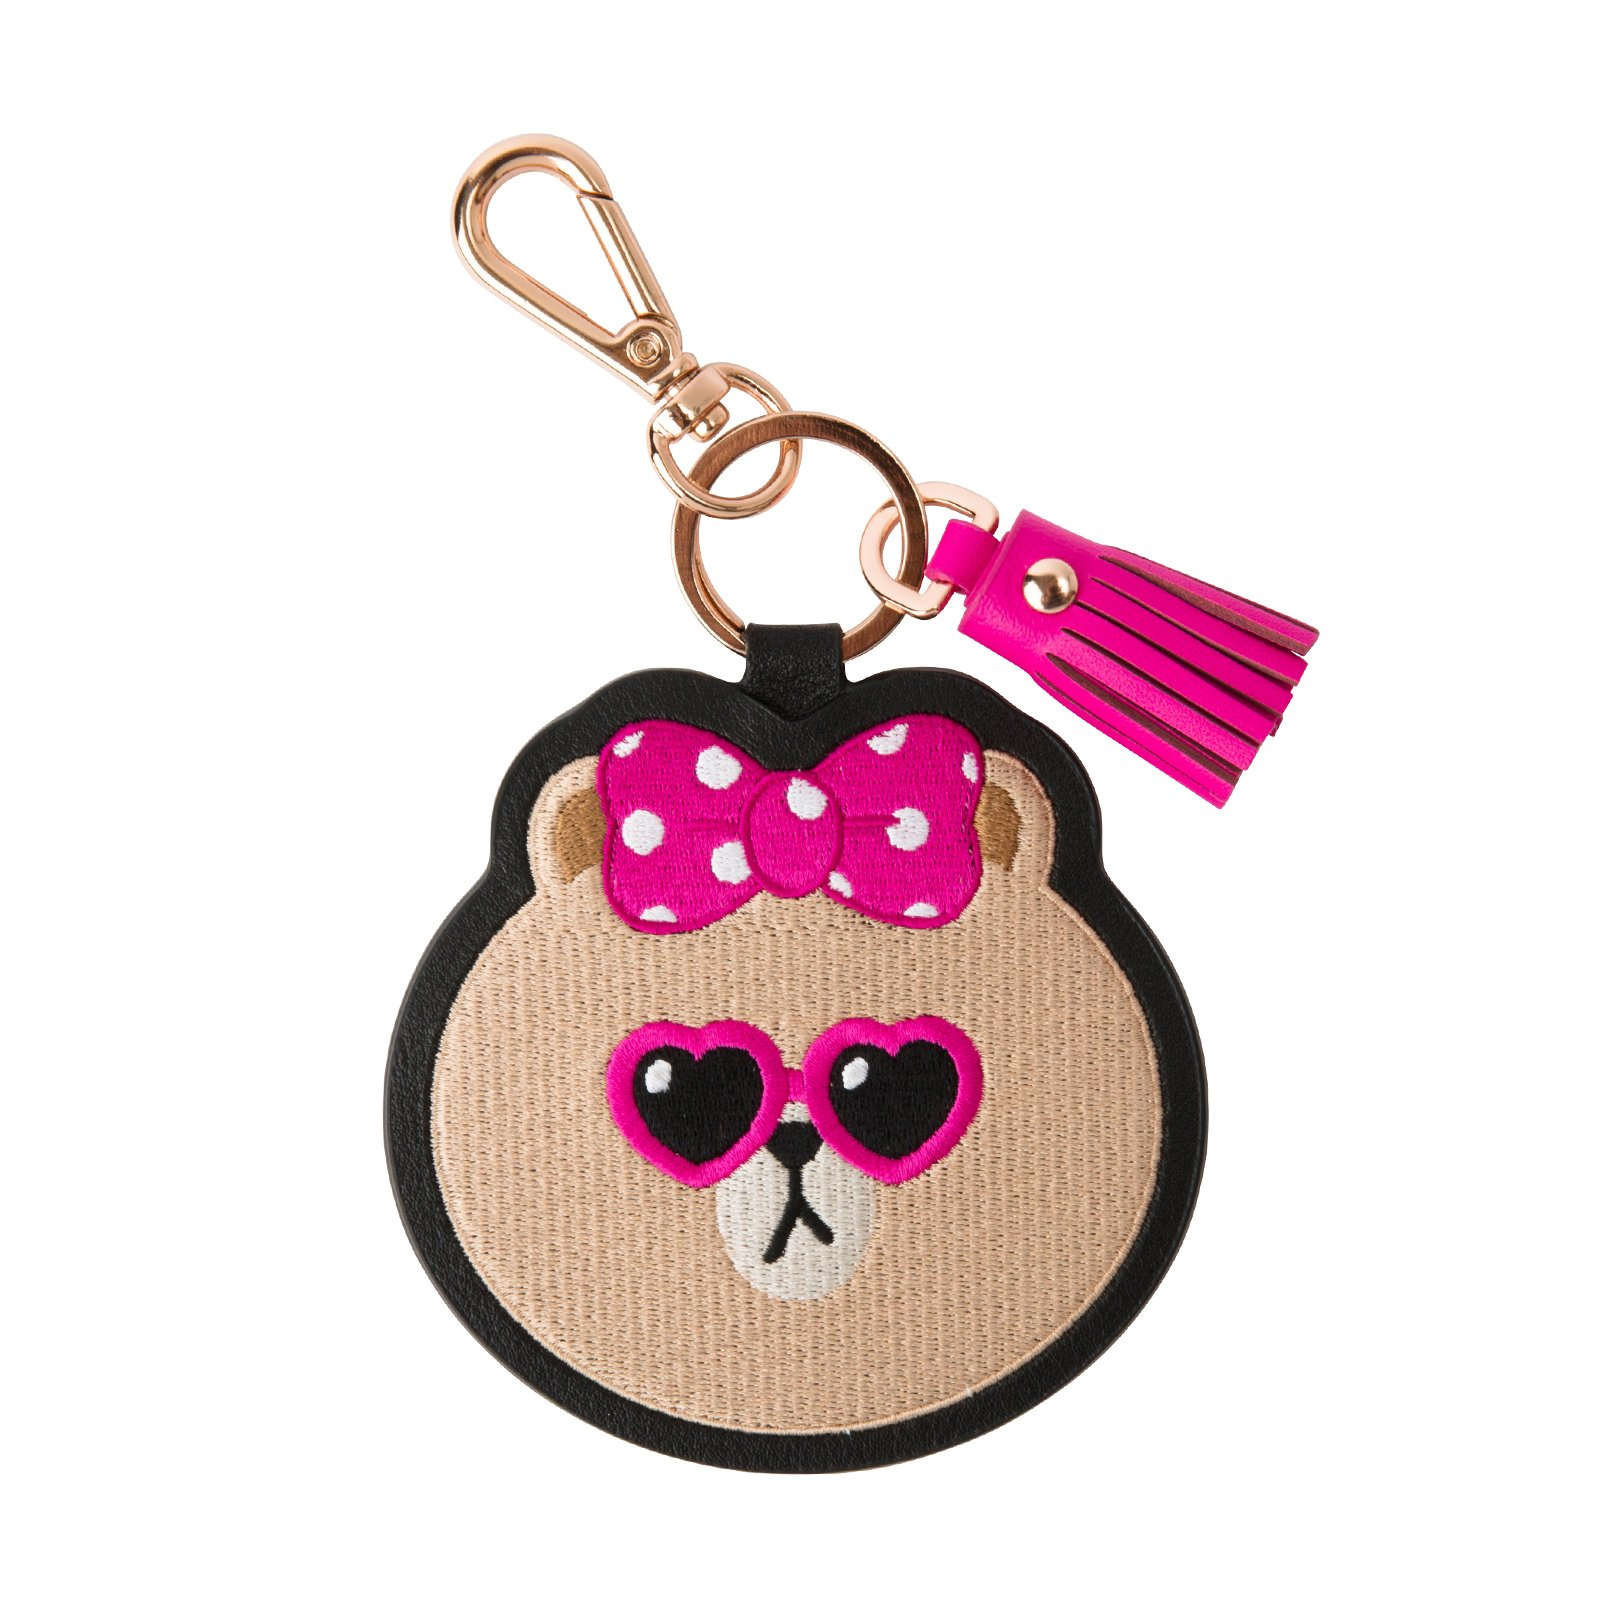 LINE FRIENDS Choco Pink Sunglasses Embroidered Key-Ring With Mirror One Size Black